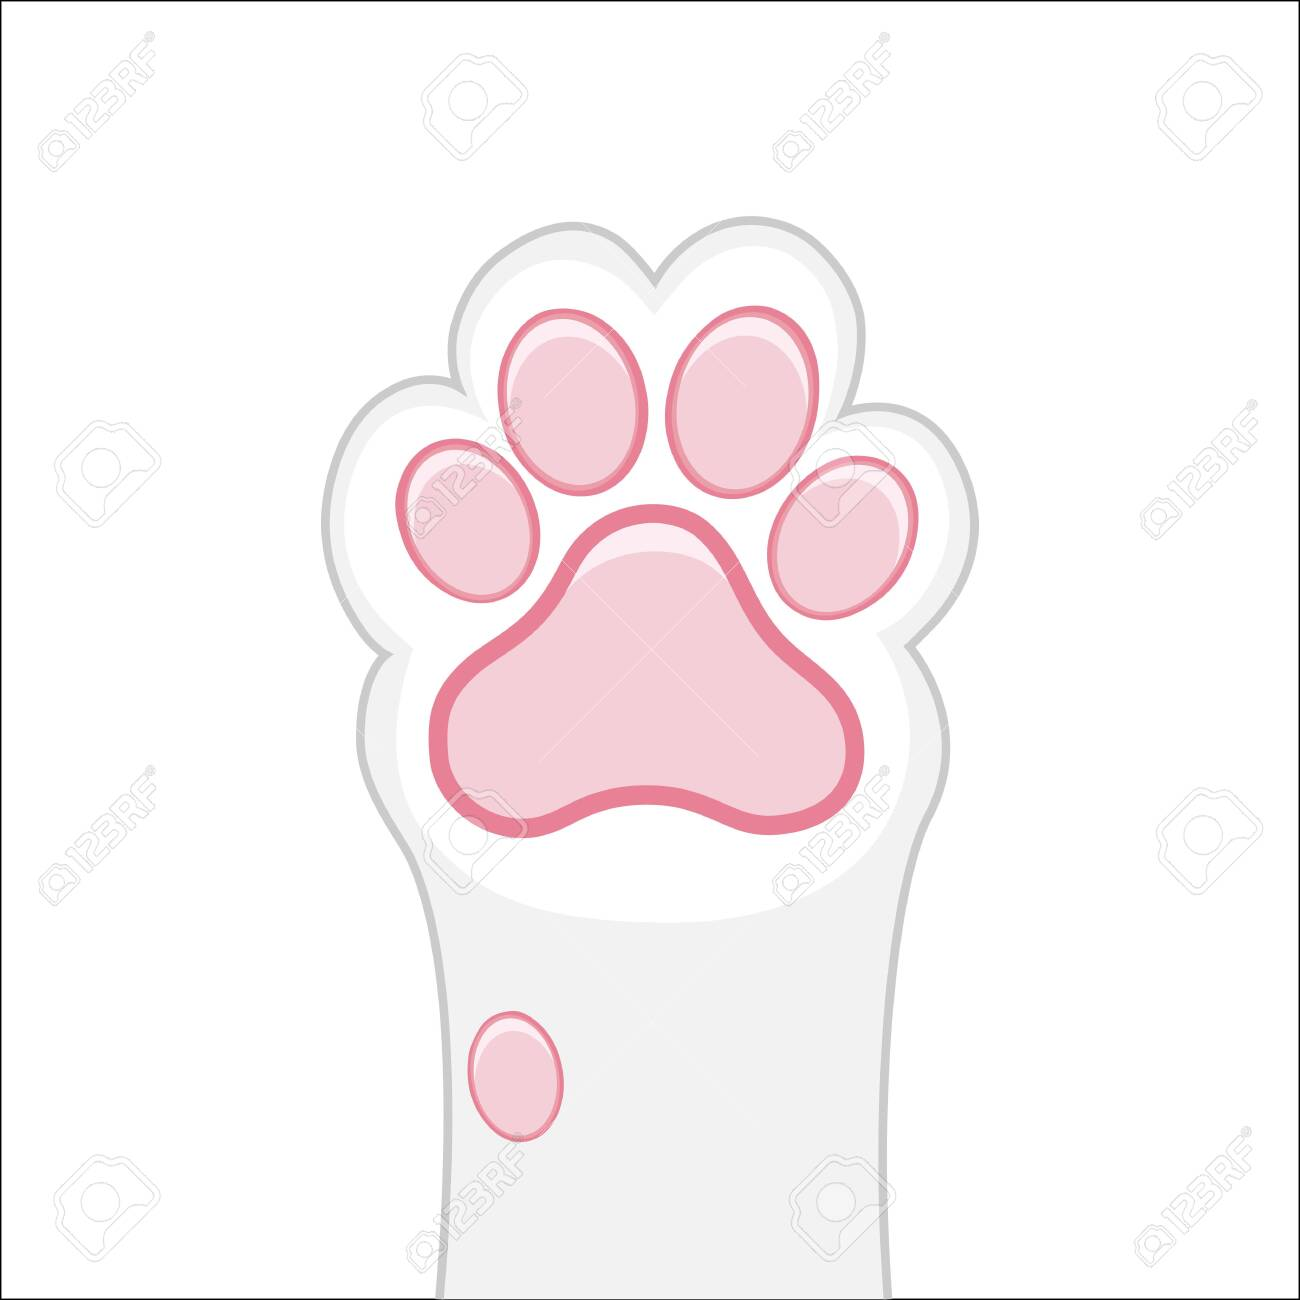 Cat Paw Background Kitten Flat Design Prints Cartoon Cute Royalty Free Cliparts Vectors And Stock Illustration Image 137180563